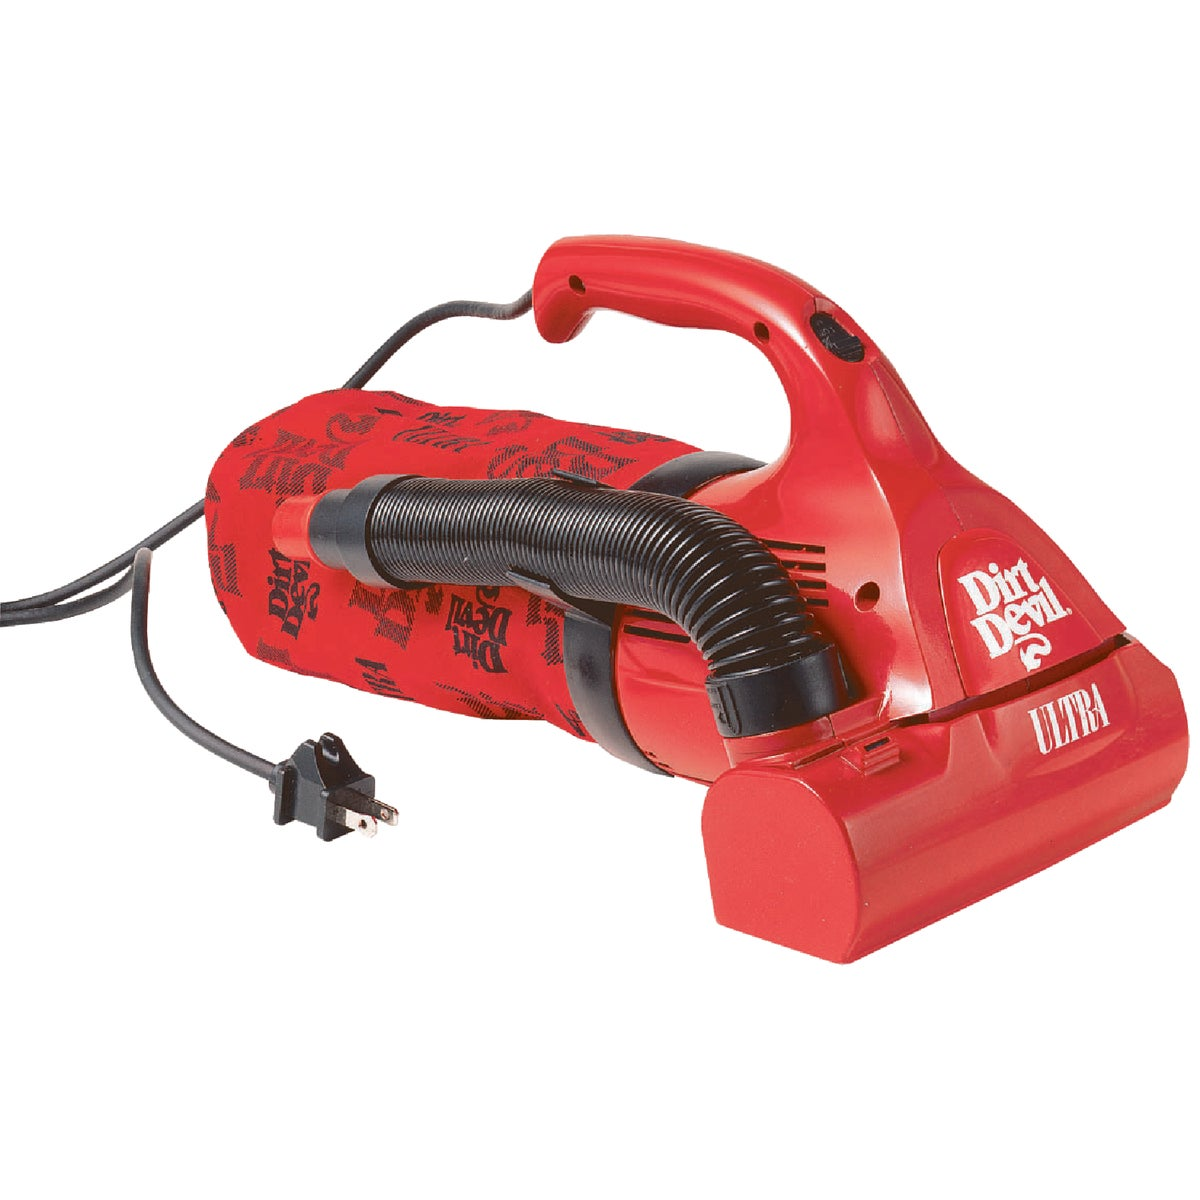 DIRT DEVIL ULTRA - M08230RED by Royal Appliance